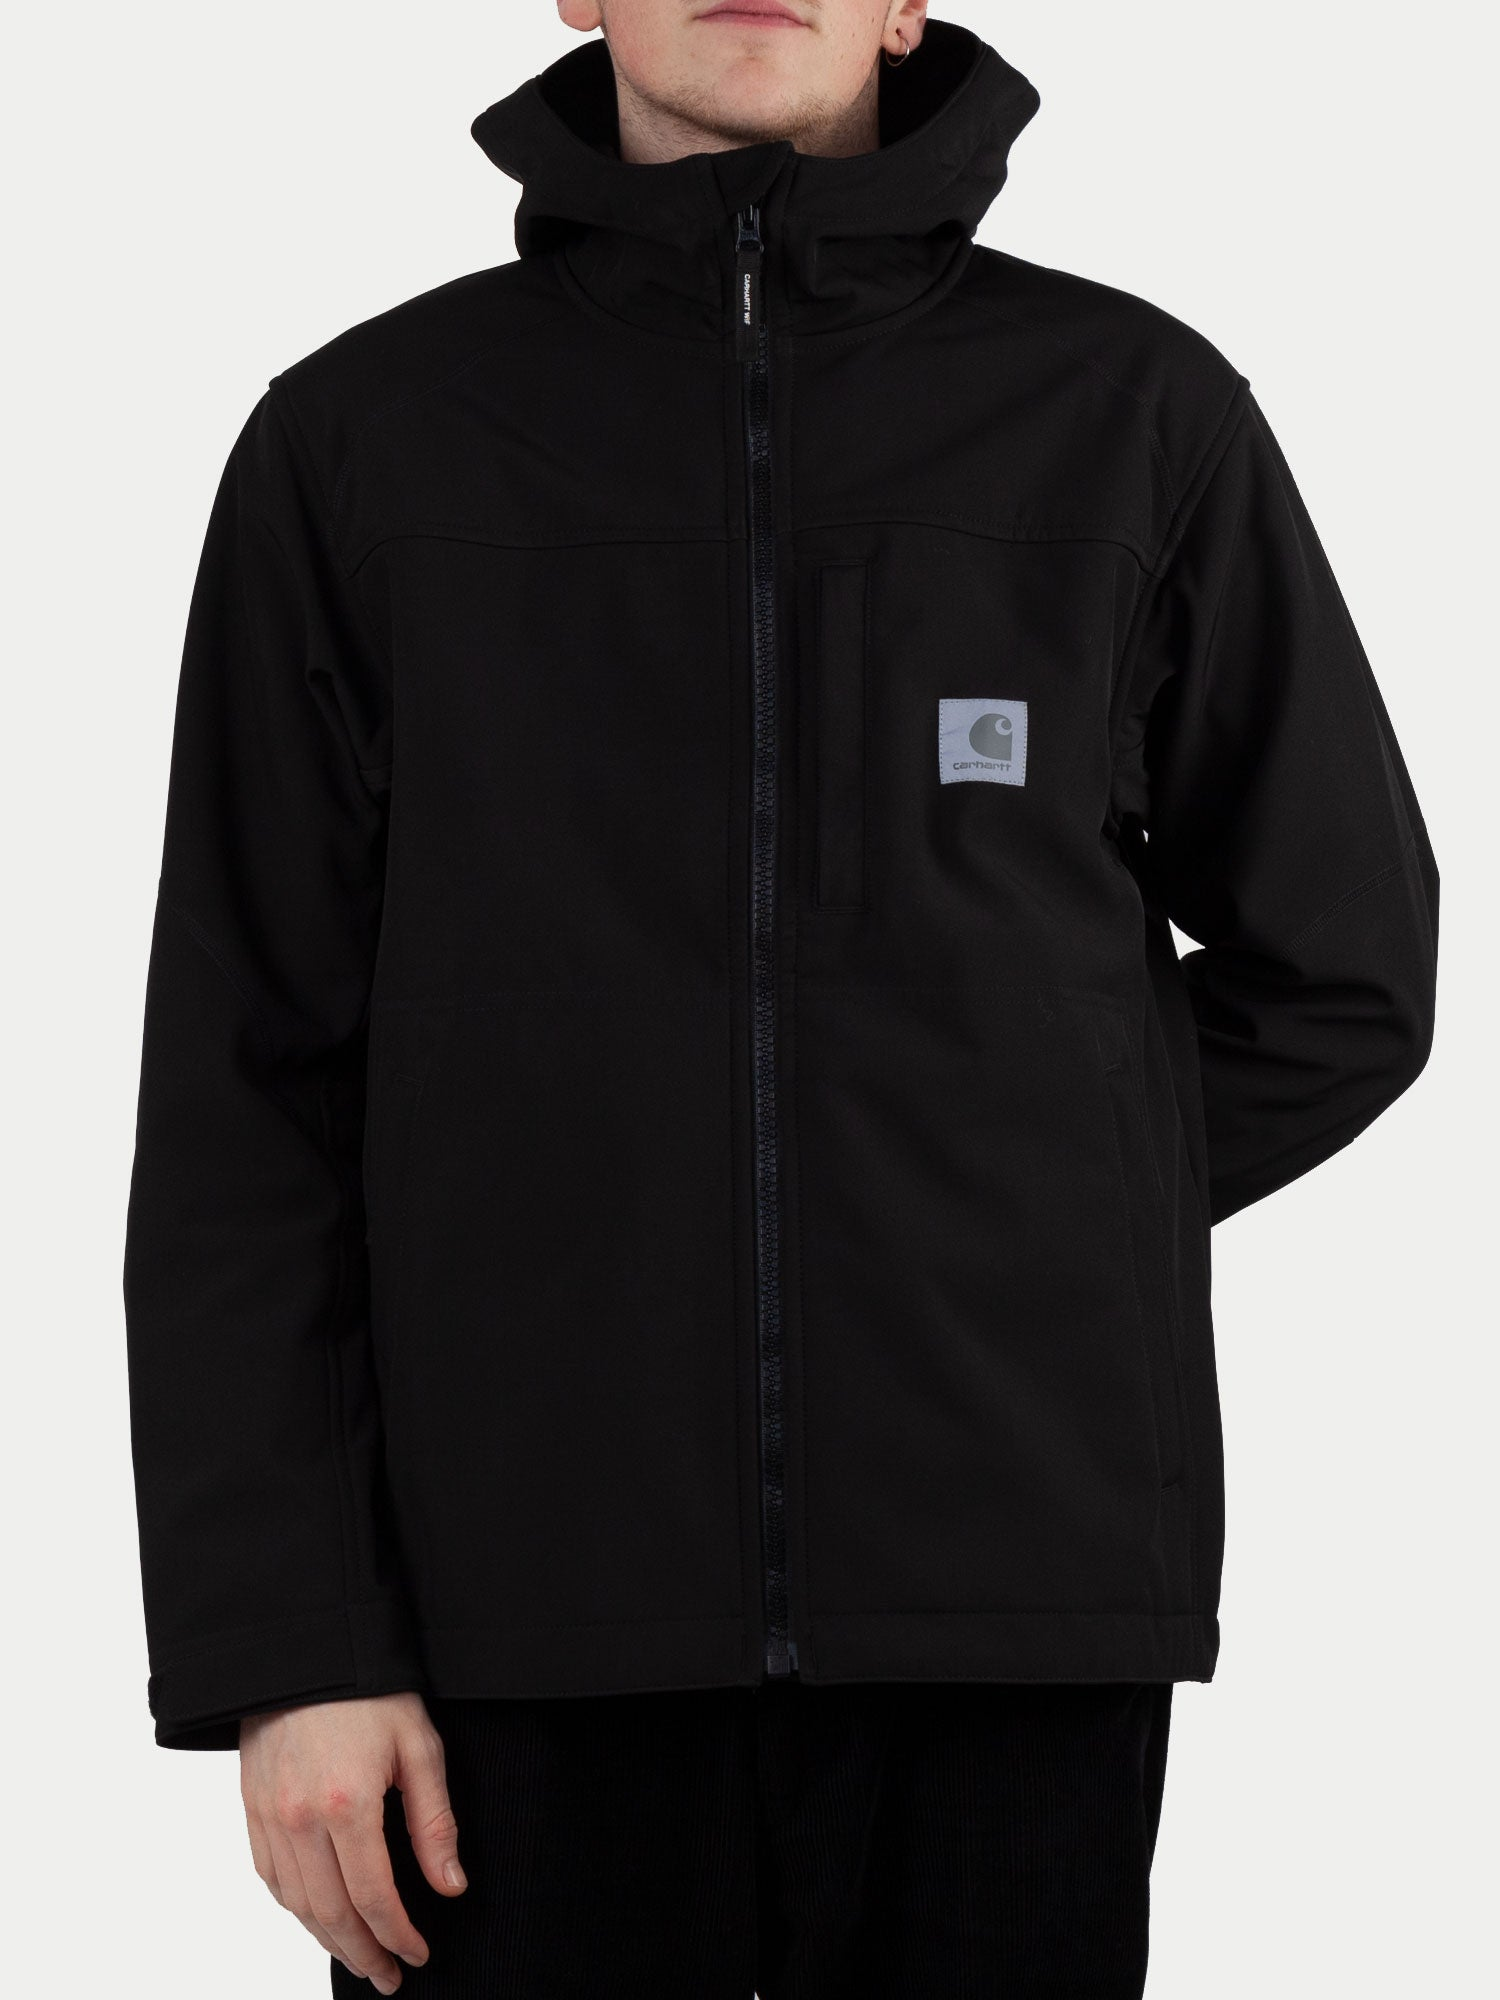 Carhartt Softshell Jacket (Black) m1